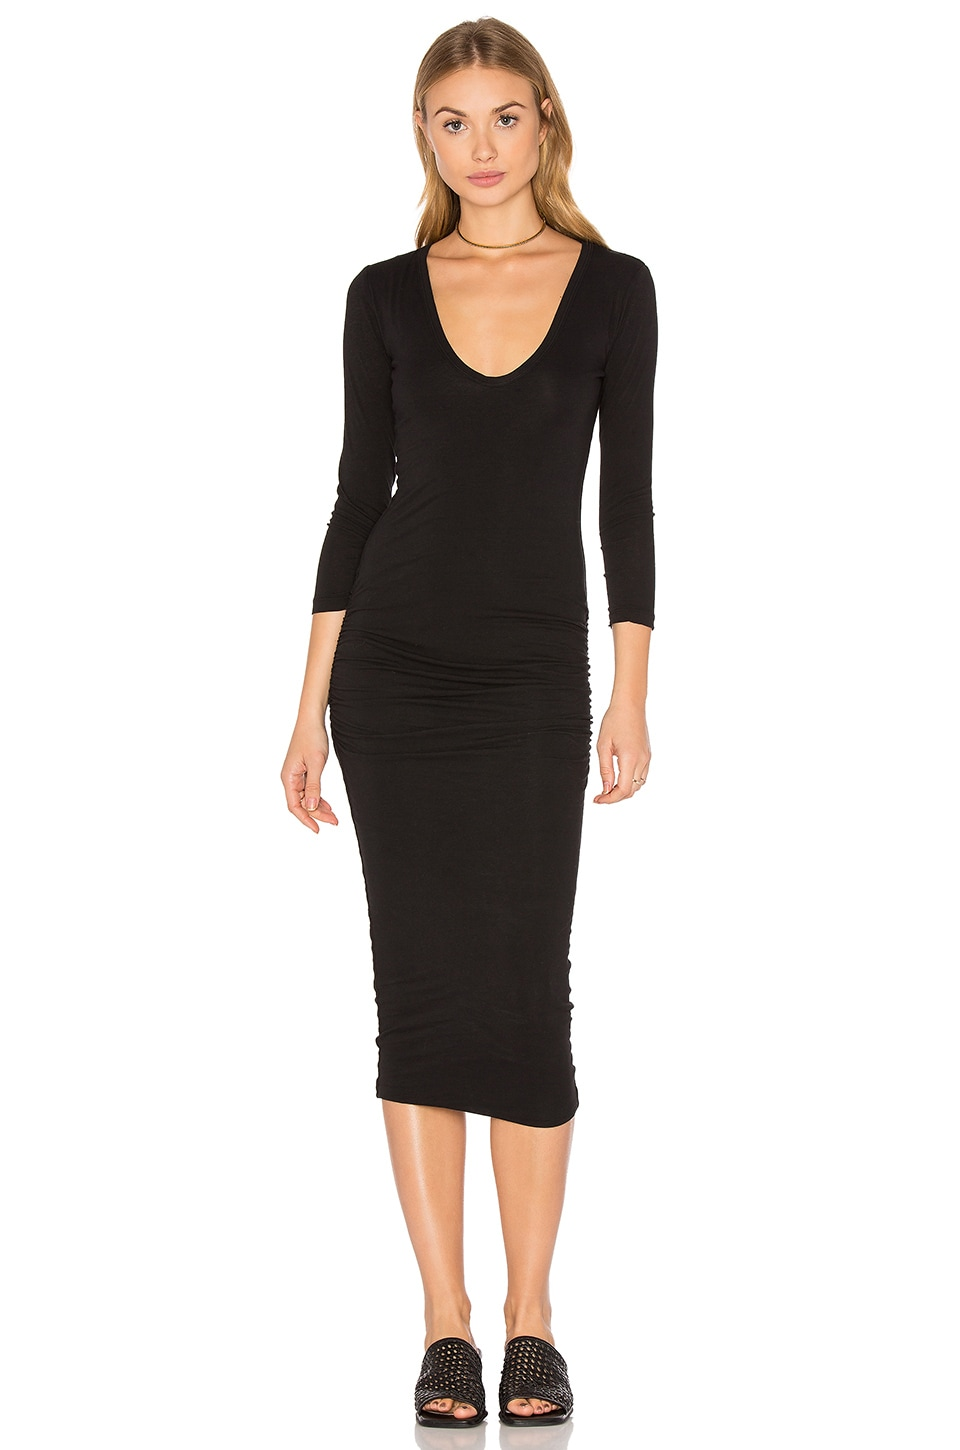 James Perse Classic V-Neck Skinny Dress in Black